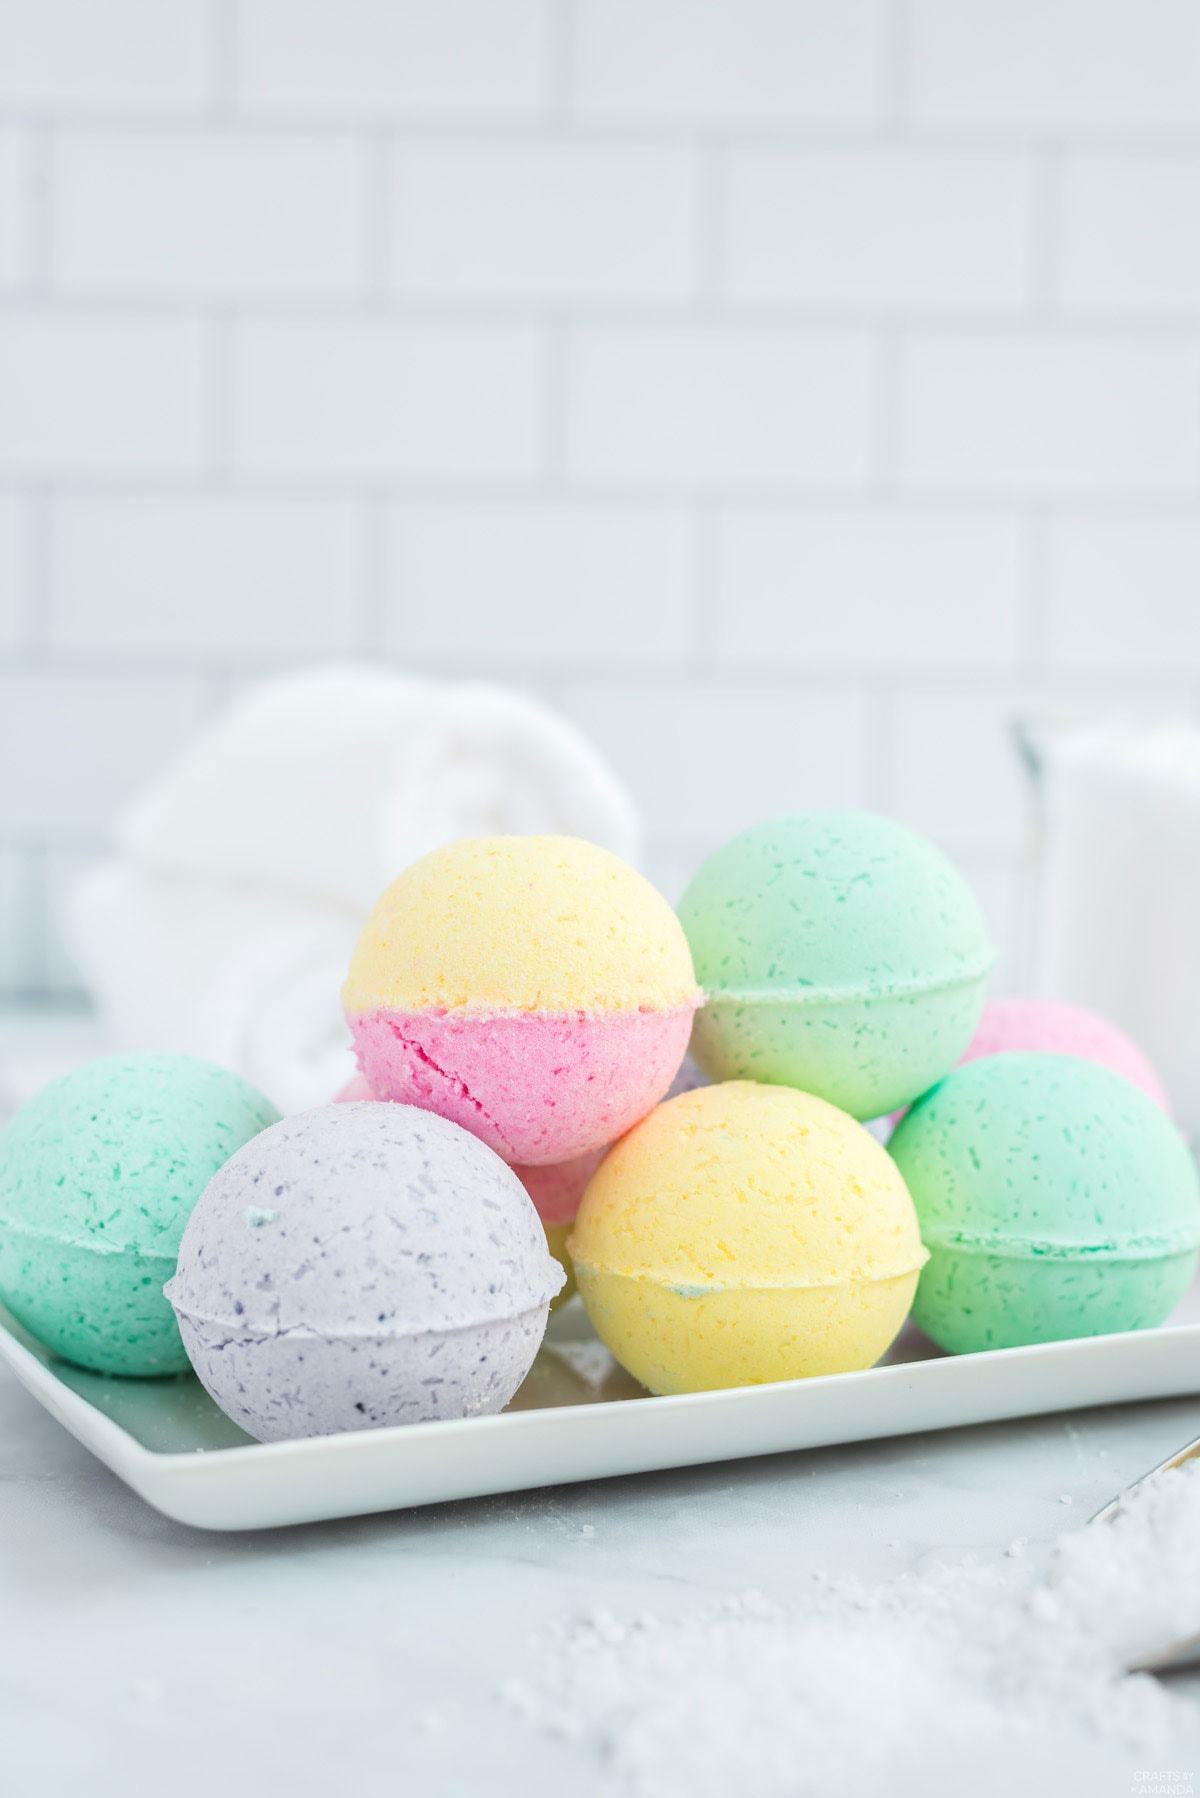 tray of colorful bath bombs on bathroom counter